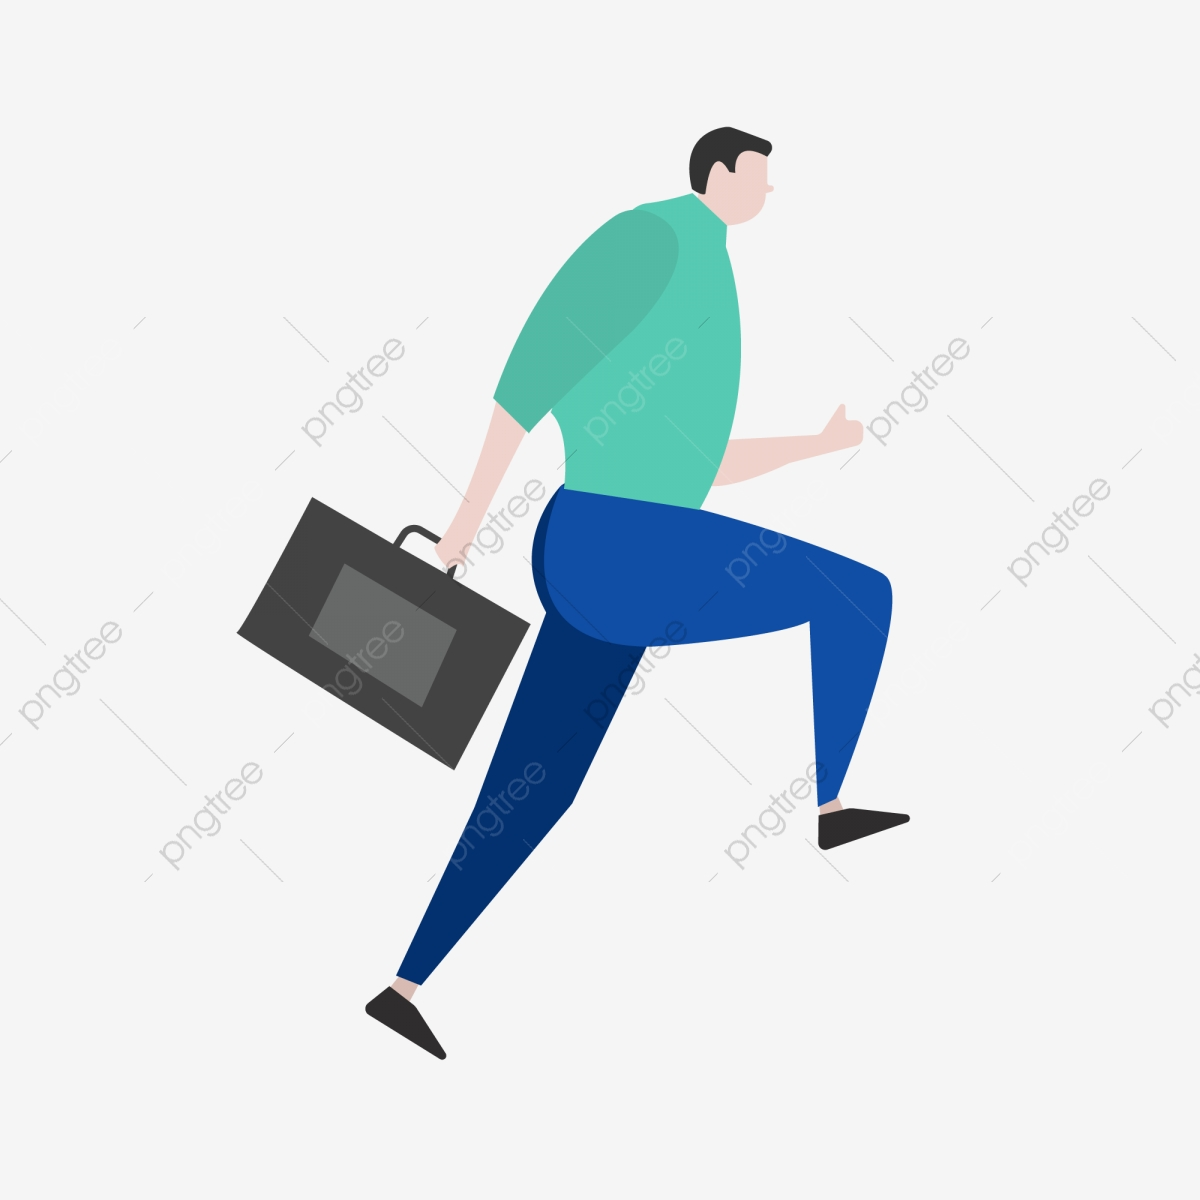 Man Carrying Bag Running Hand Drawing Man Running With A Bag Fitness Motion Png Transparent Image And Clipart For Free Download